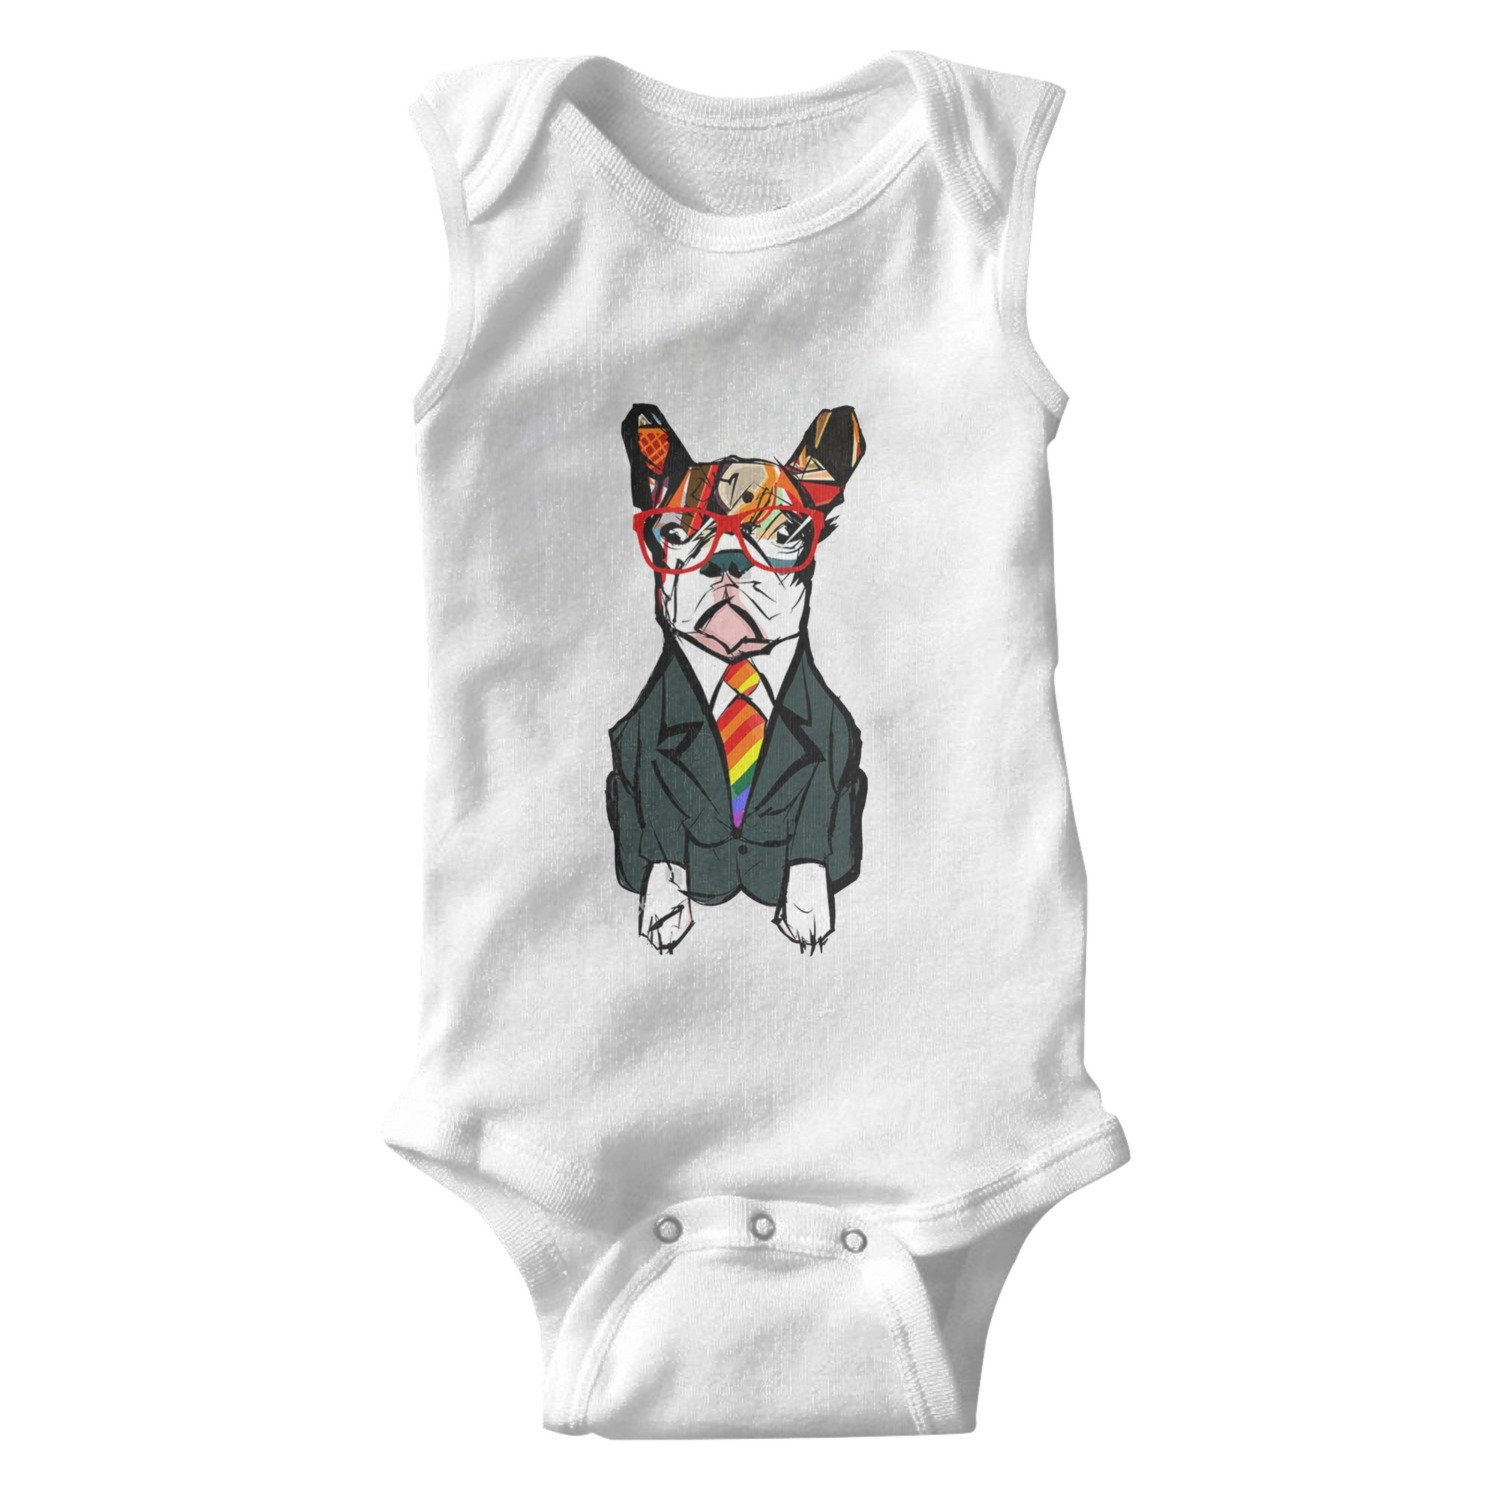 lsawdas Cute French Bulldog Wearing Glasses Unisex Baby Cotton Sleeveless Funny Onesies Baby Onesies White